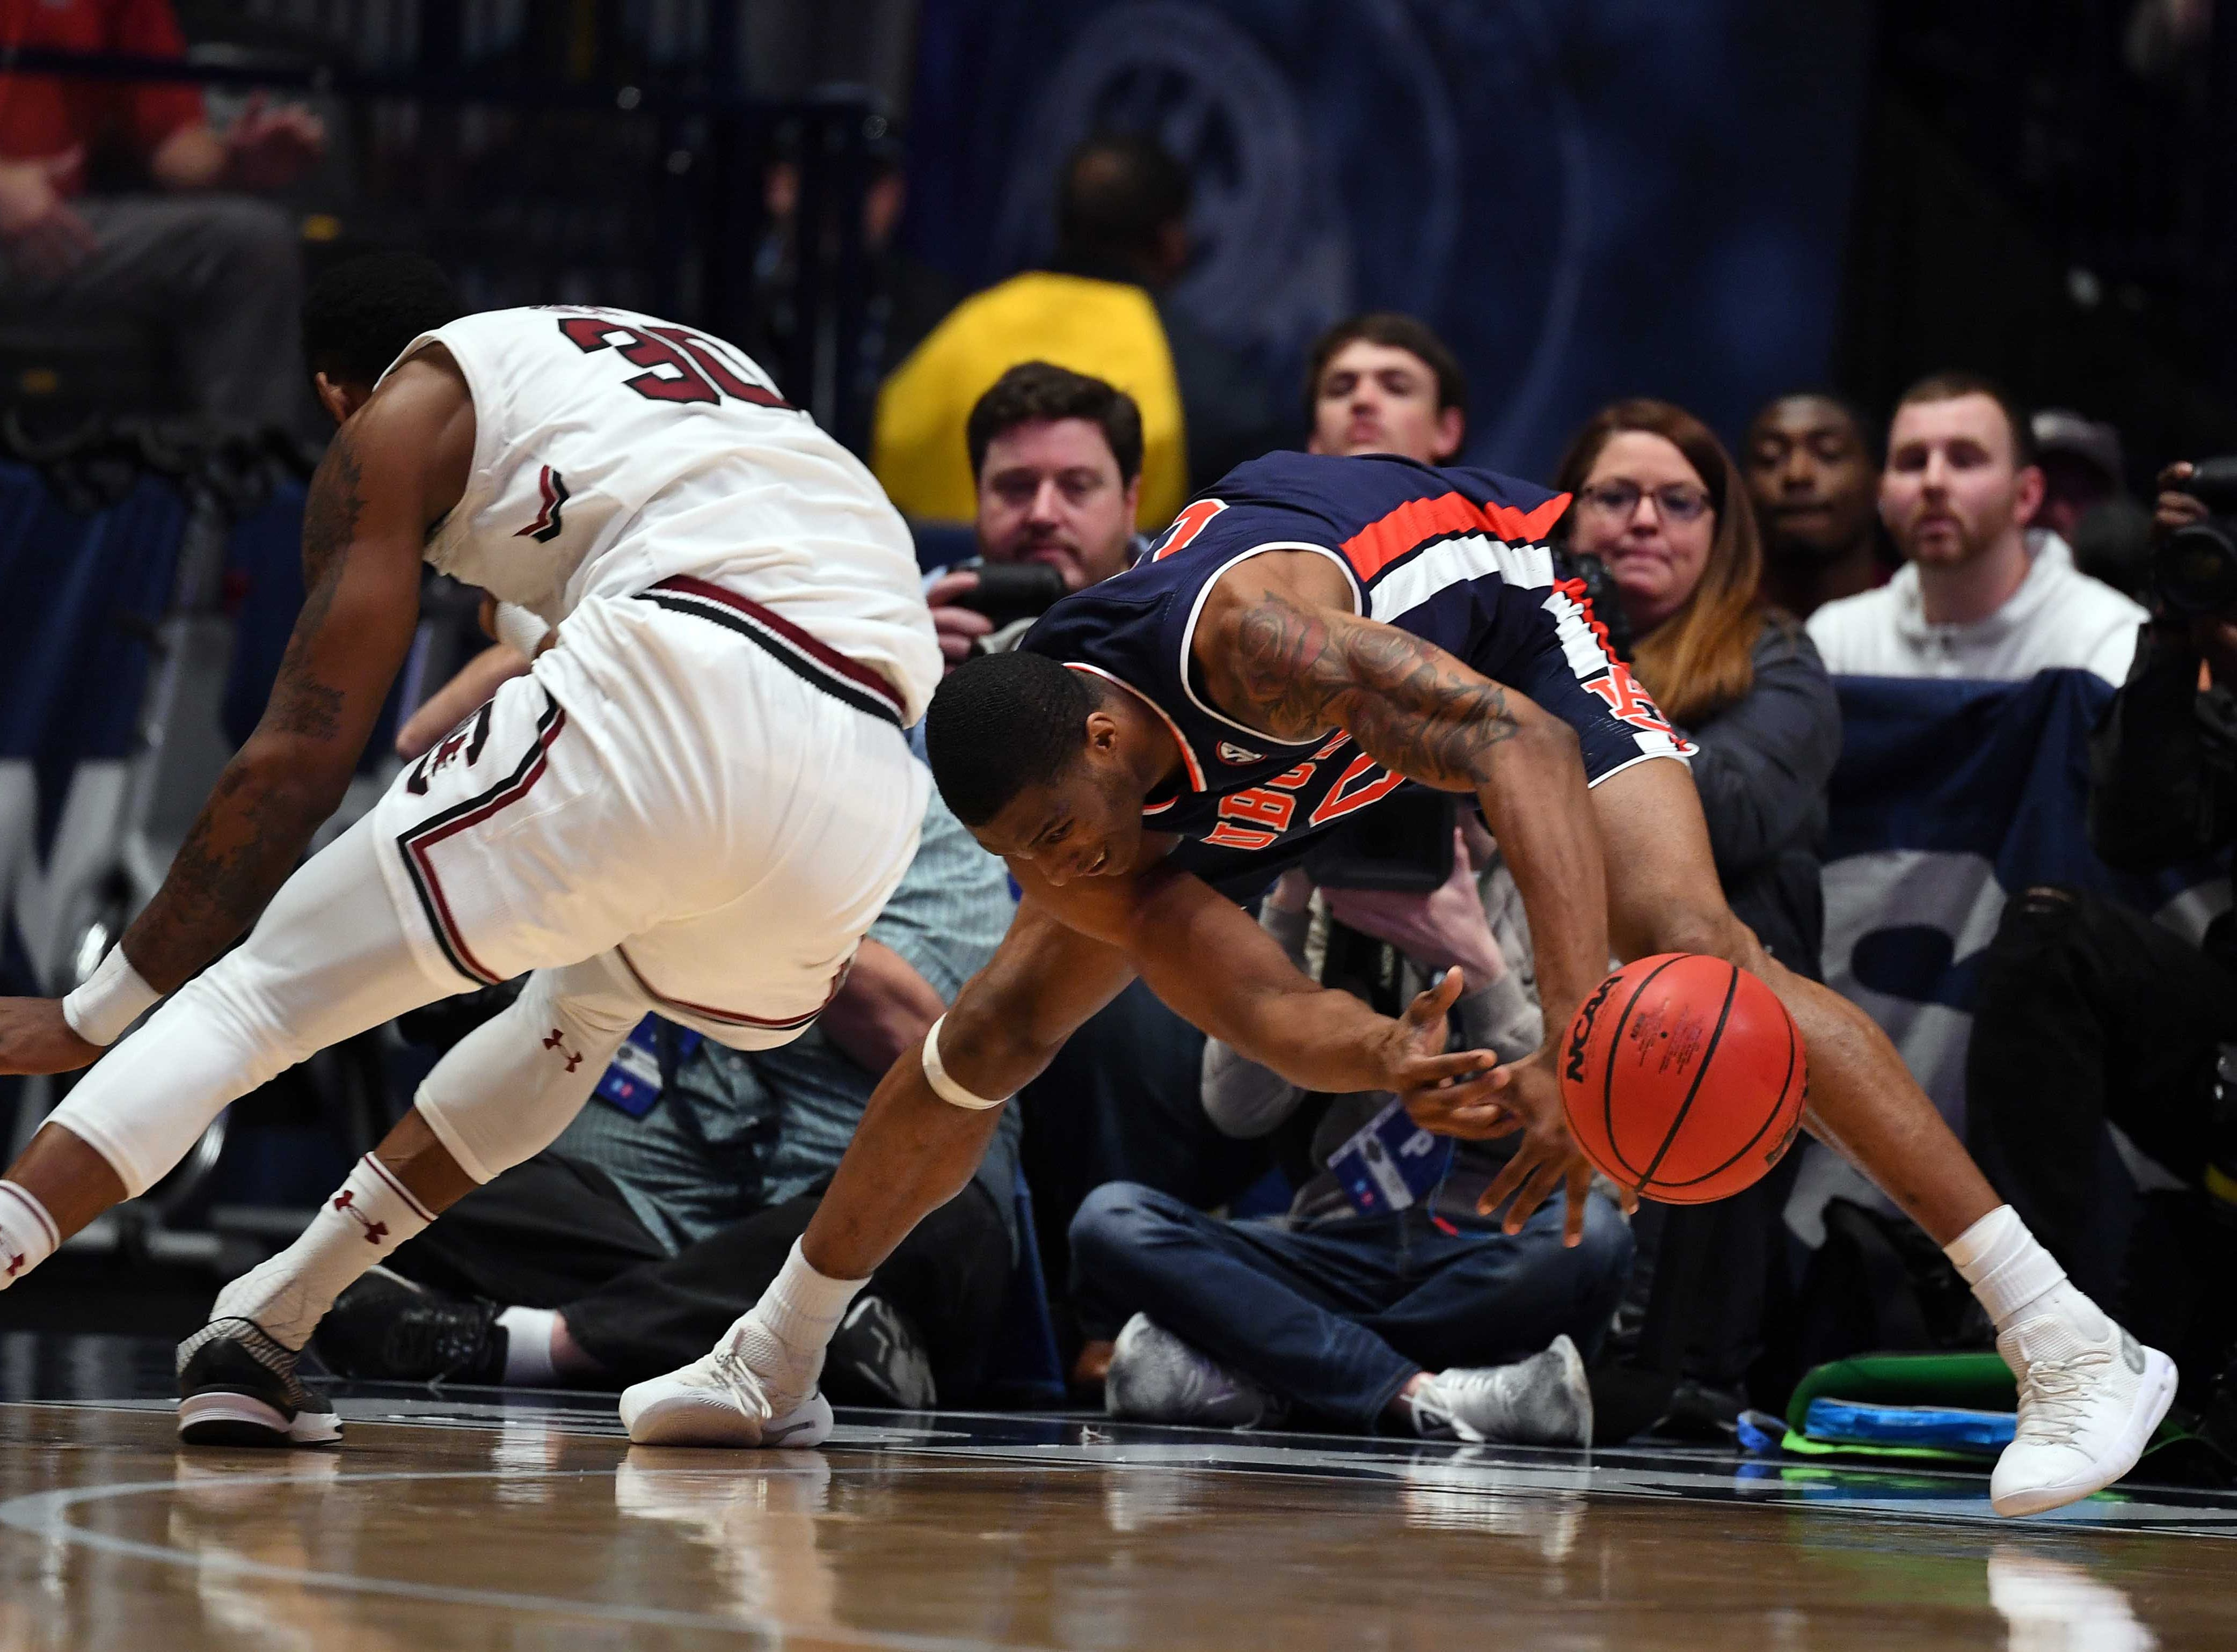 Mar 15, 2019; Nashville, TN, USA; South Carolina Gamecocks forward Chris Silva (30) and Auburn Tigers forward Horace Spencer (0) battle for a loose ball in the corner during the first half of the SEC conference tournament at Bridgestone Arena. Mandatory Credit: Christopher Hanewinckel-USA TODAY Sports